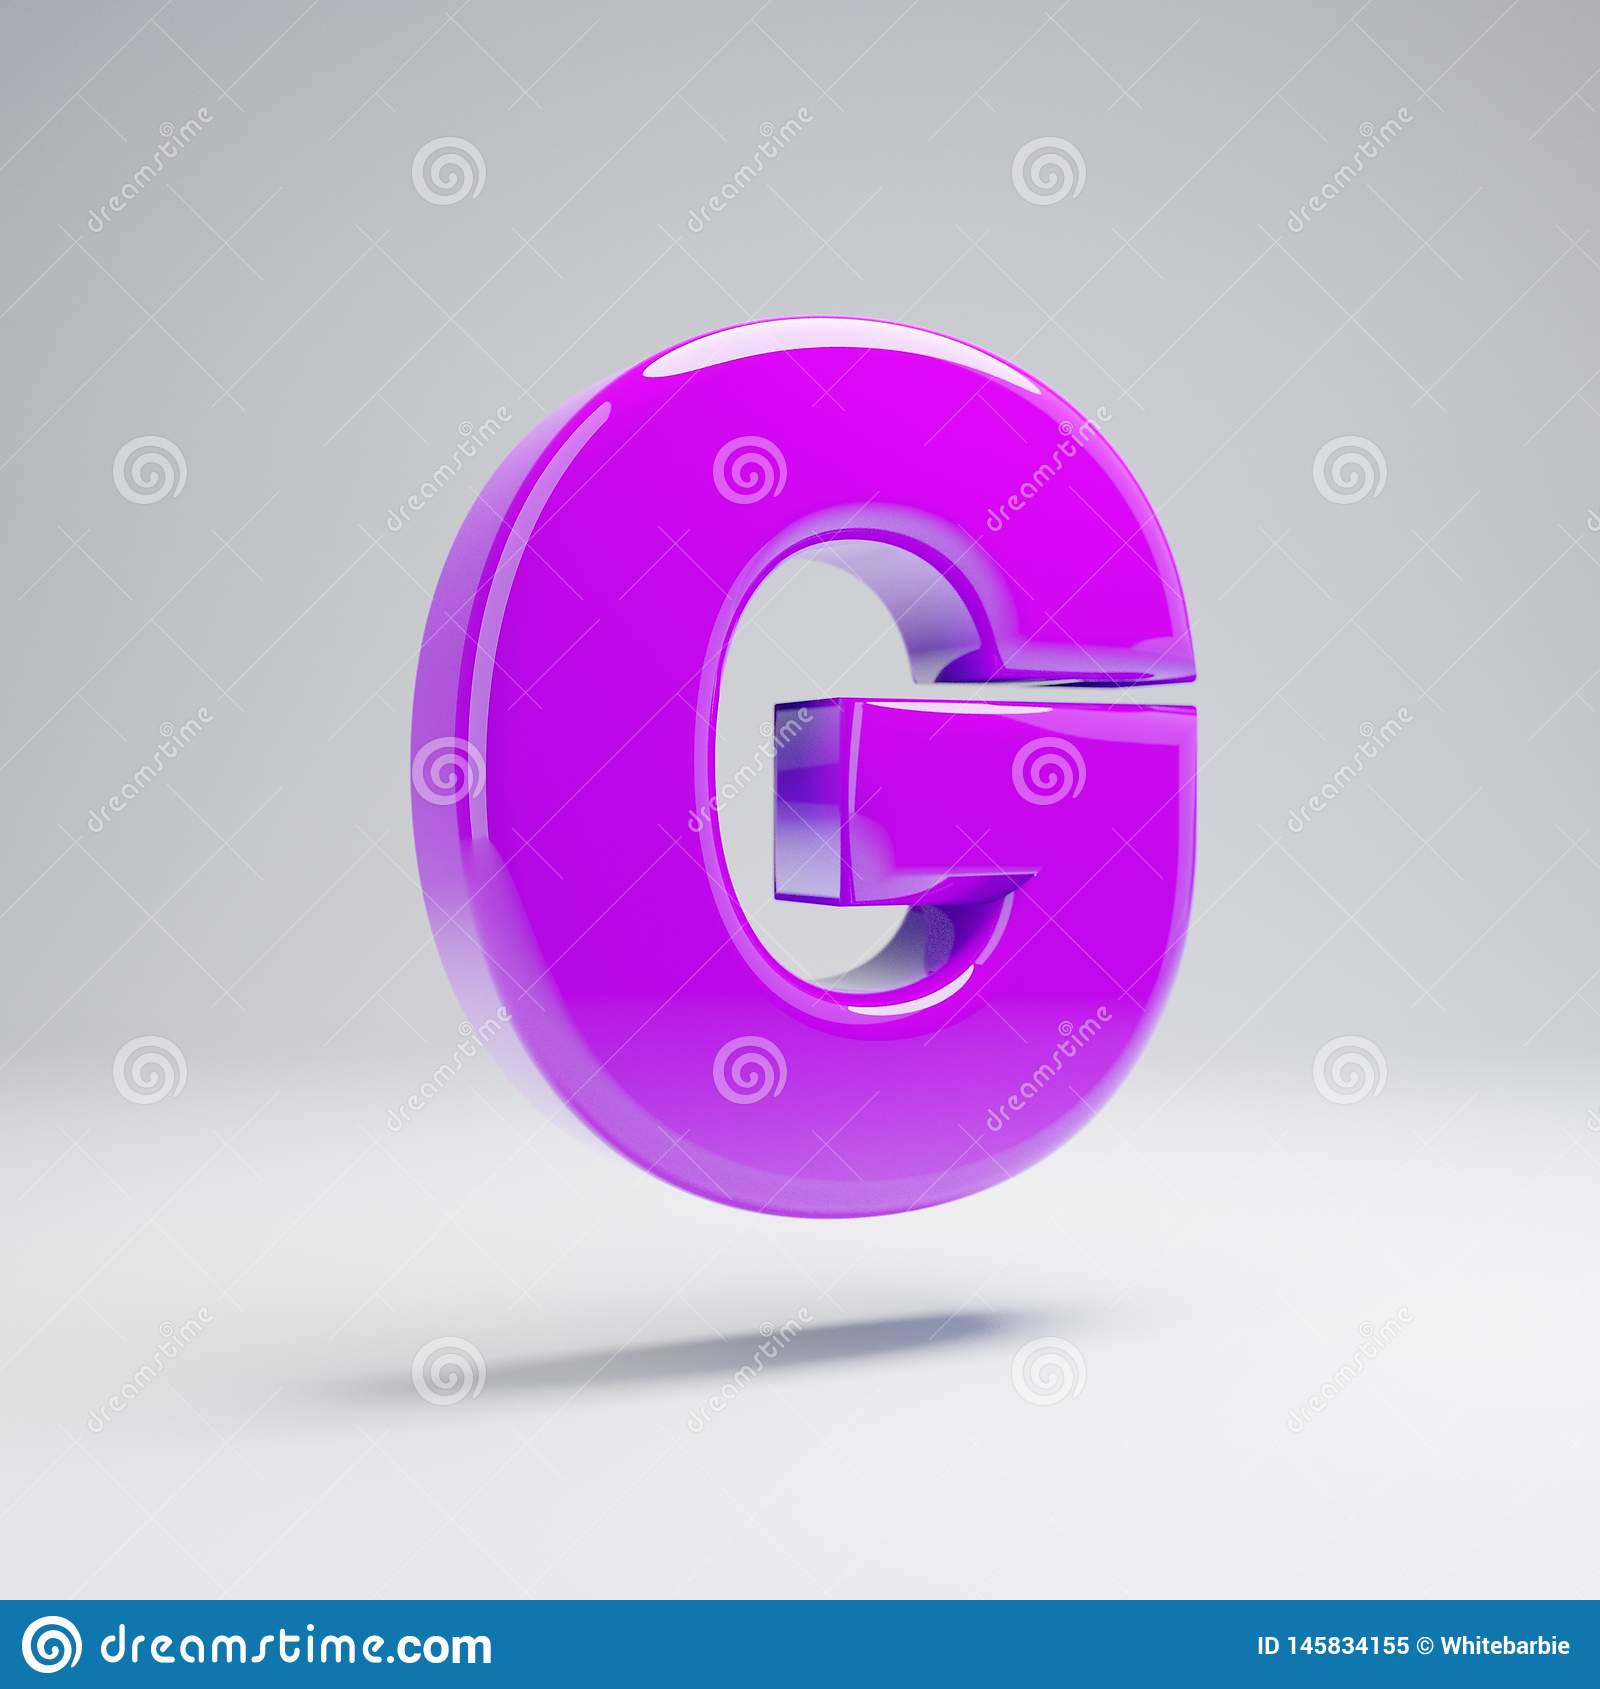 Volumetric glossy violet uppercase letter G isolated on white background